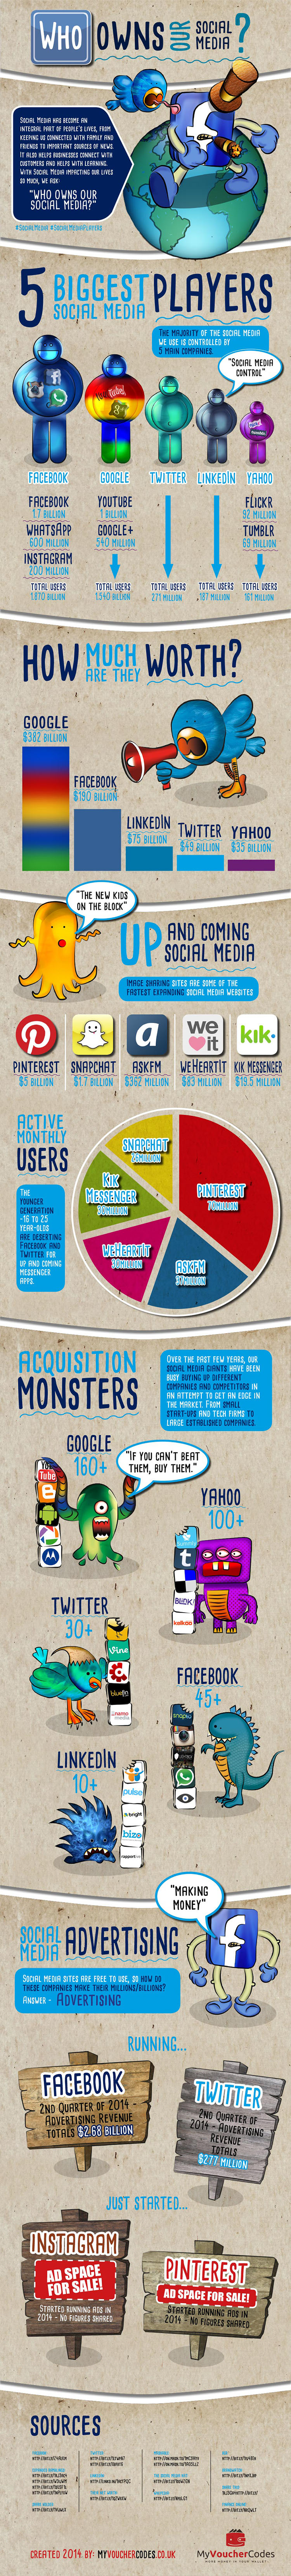 Who Owns Our Social Media [Infographic]